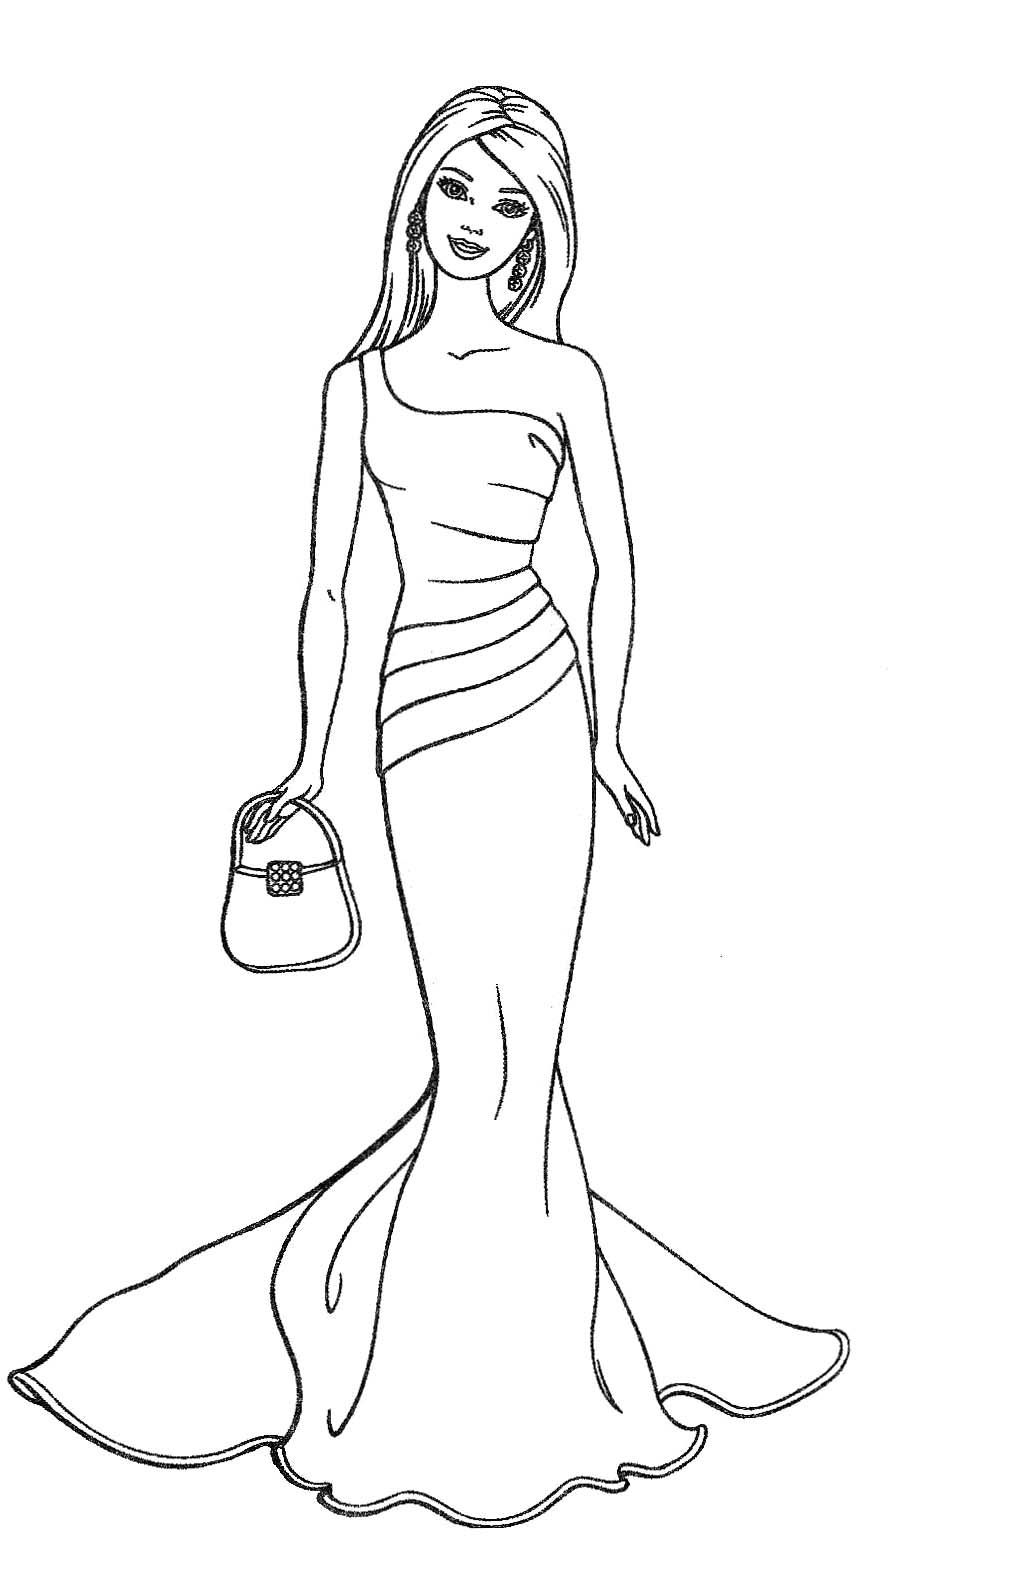 Barbie colouring in online free - Barbie Fashion Coloring Page 01